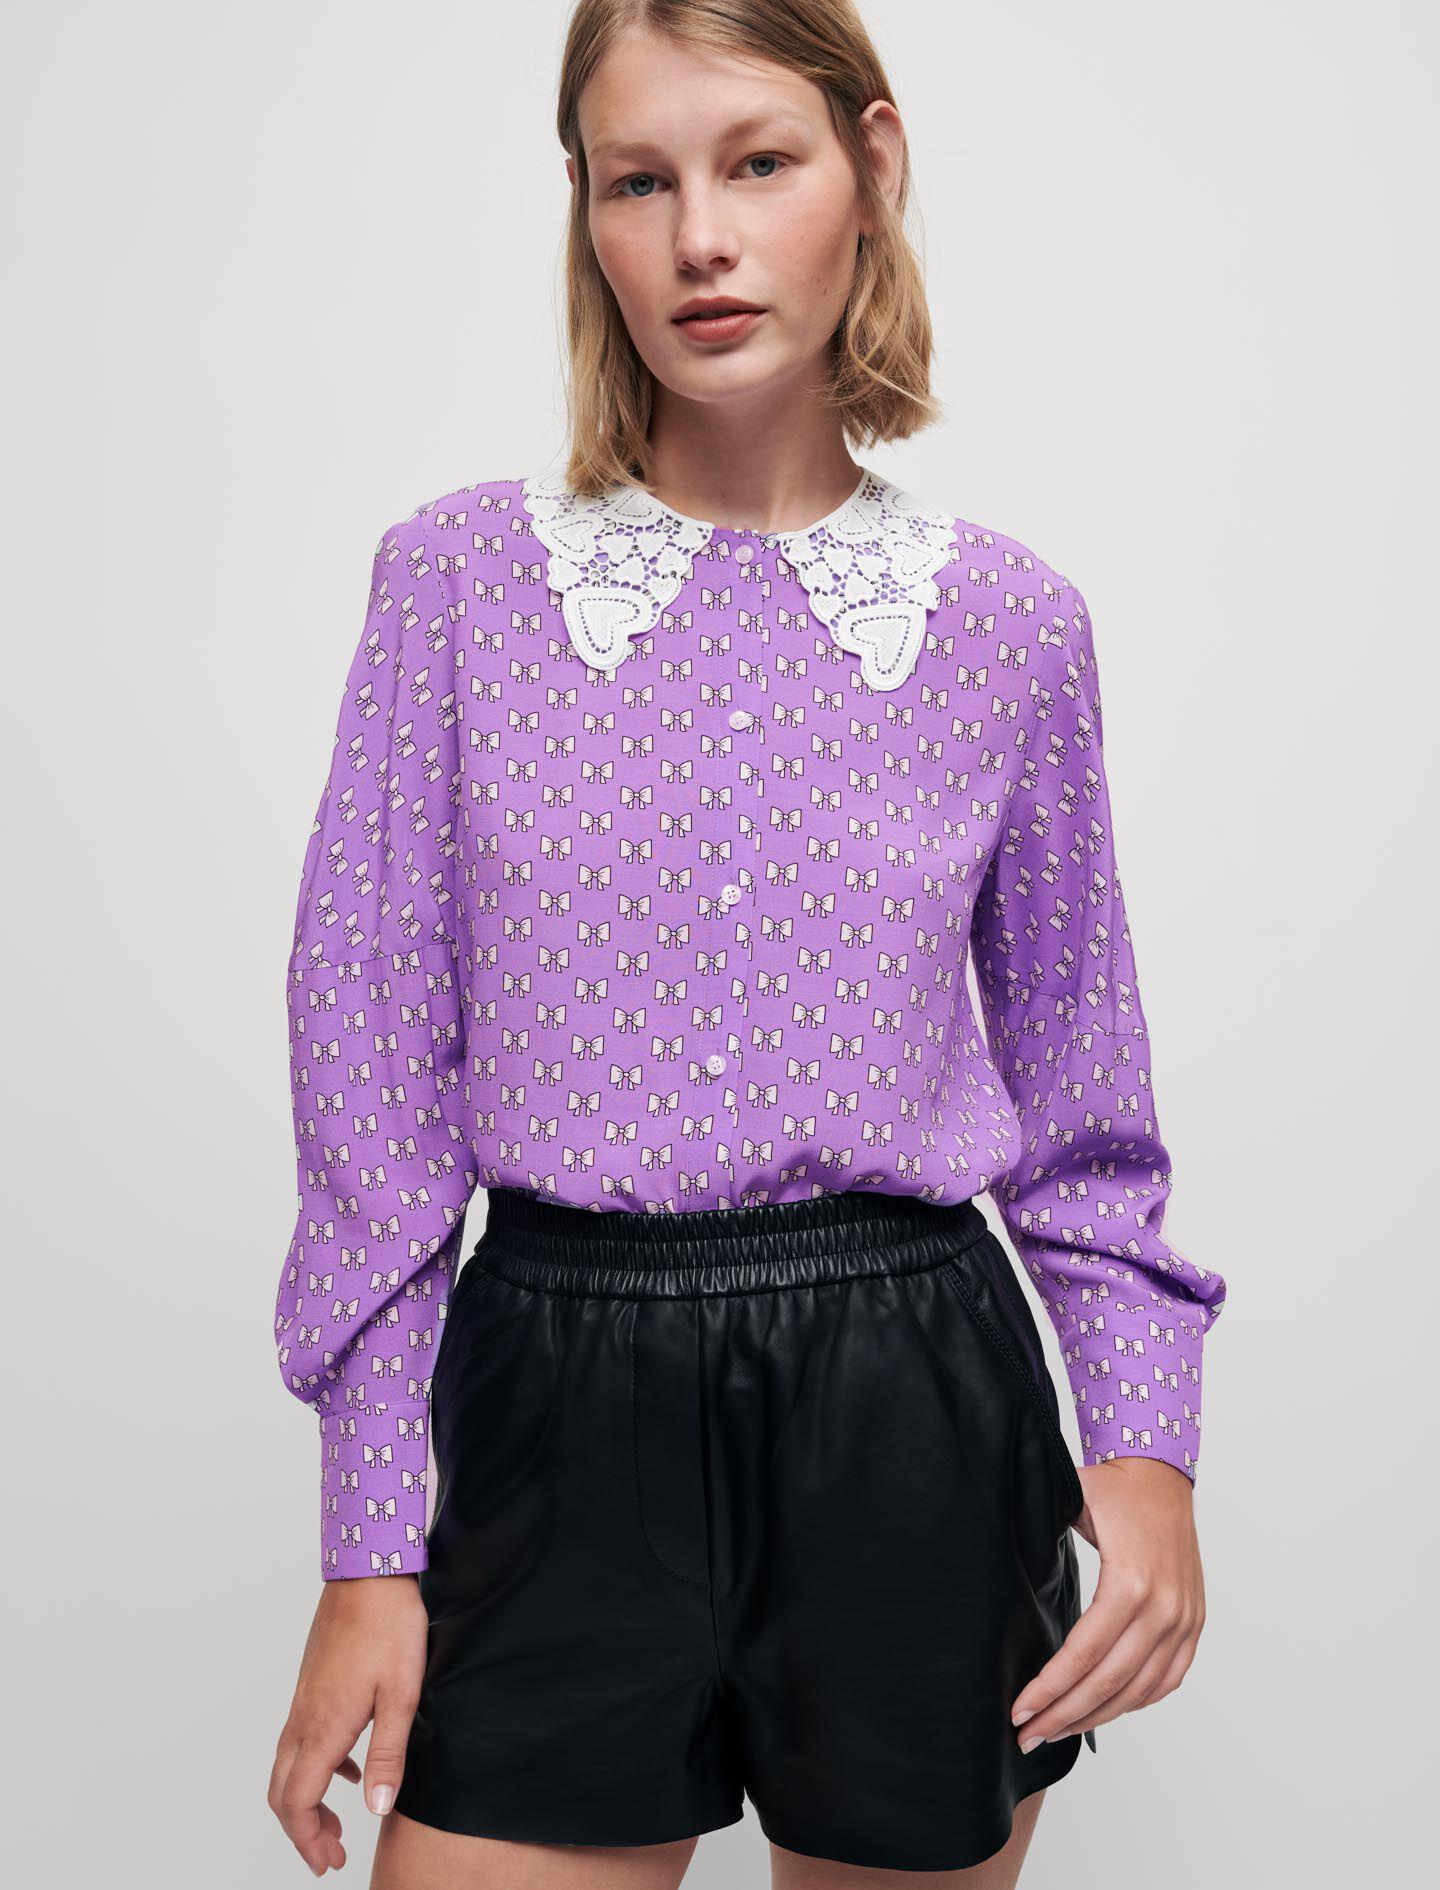 BOW-PRINT SHIRT WITH GUIPURE COLLAR